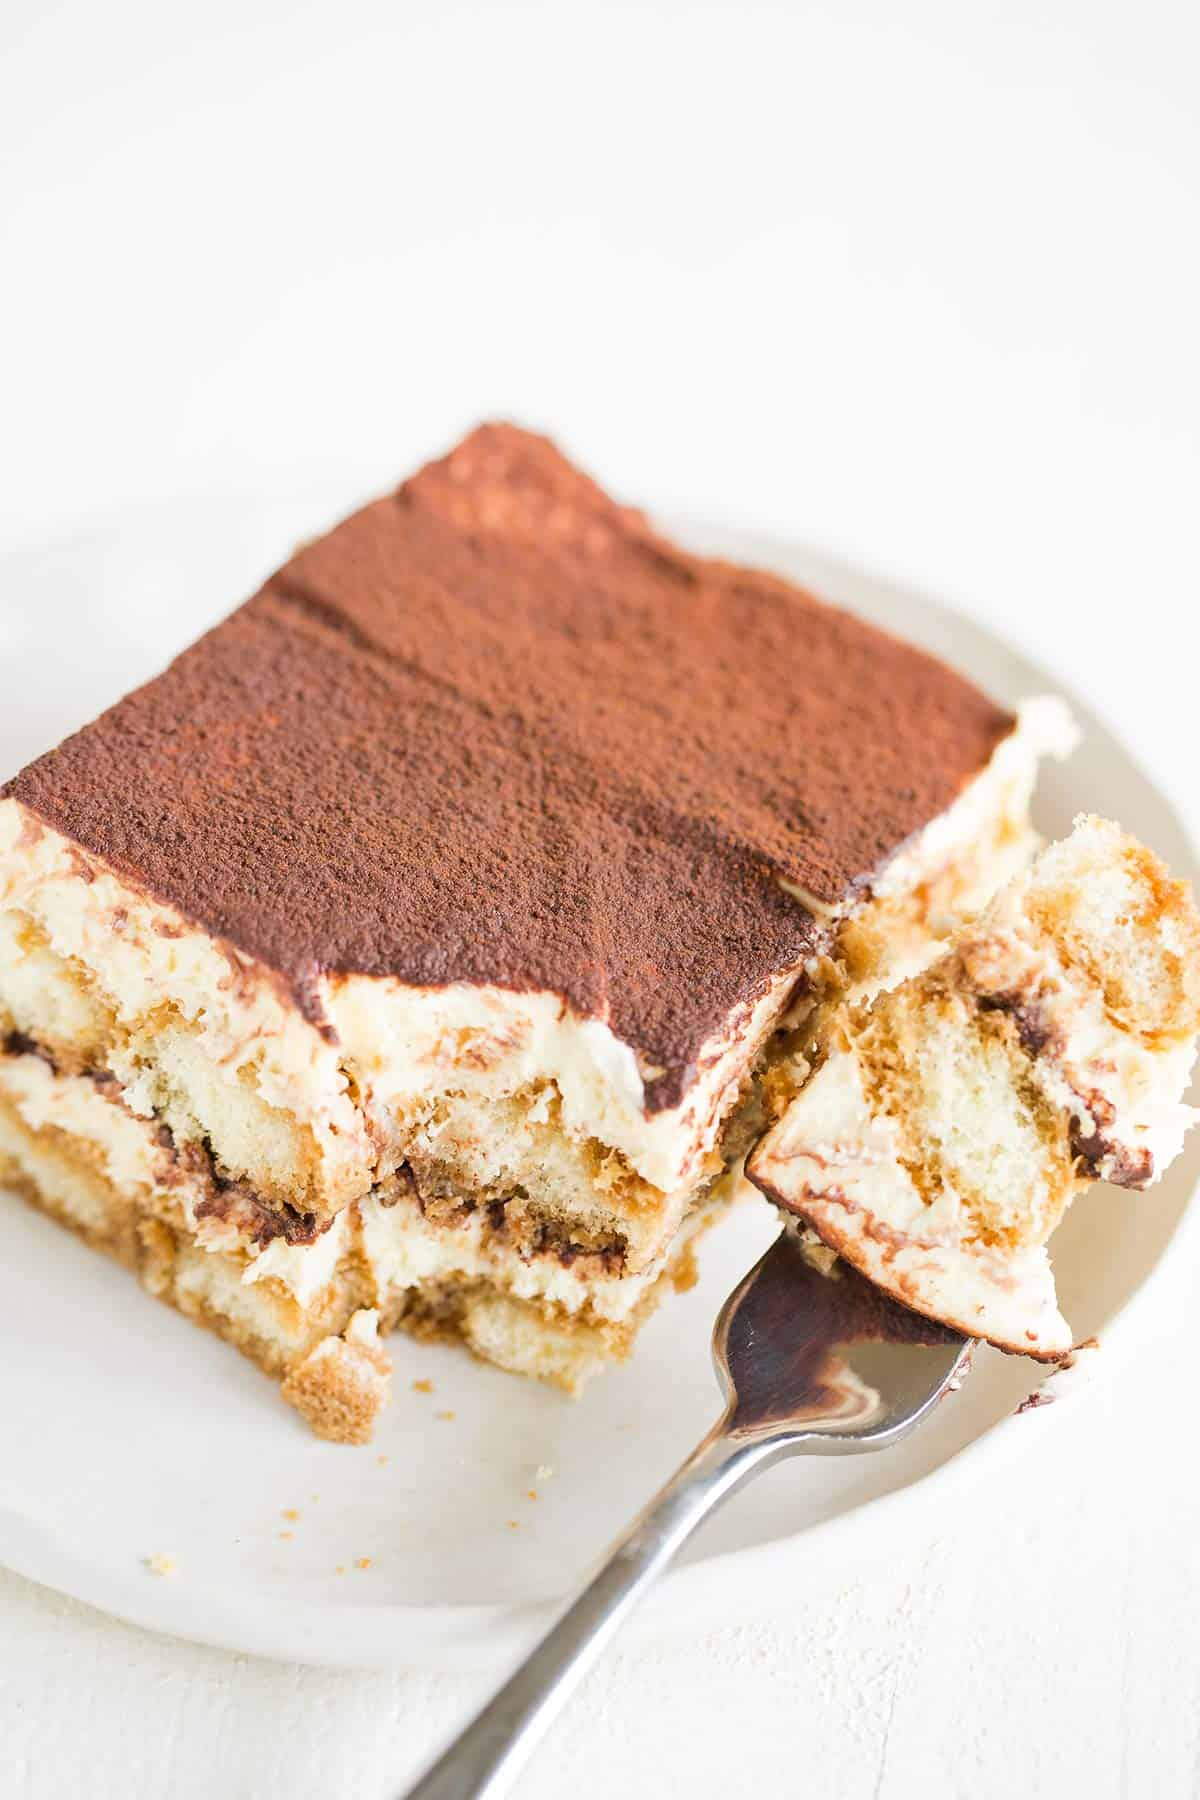 A square slice of tiramisu on a white rimmed plate with a fork full of tiramisu to the right.